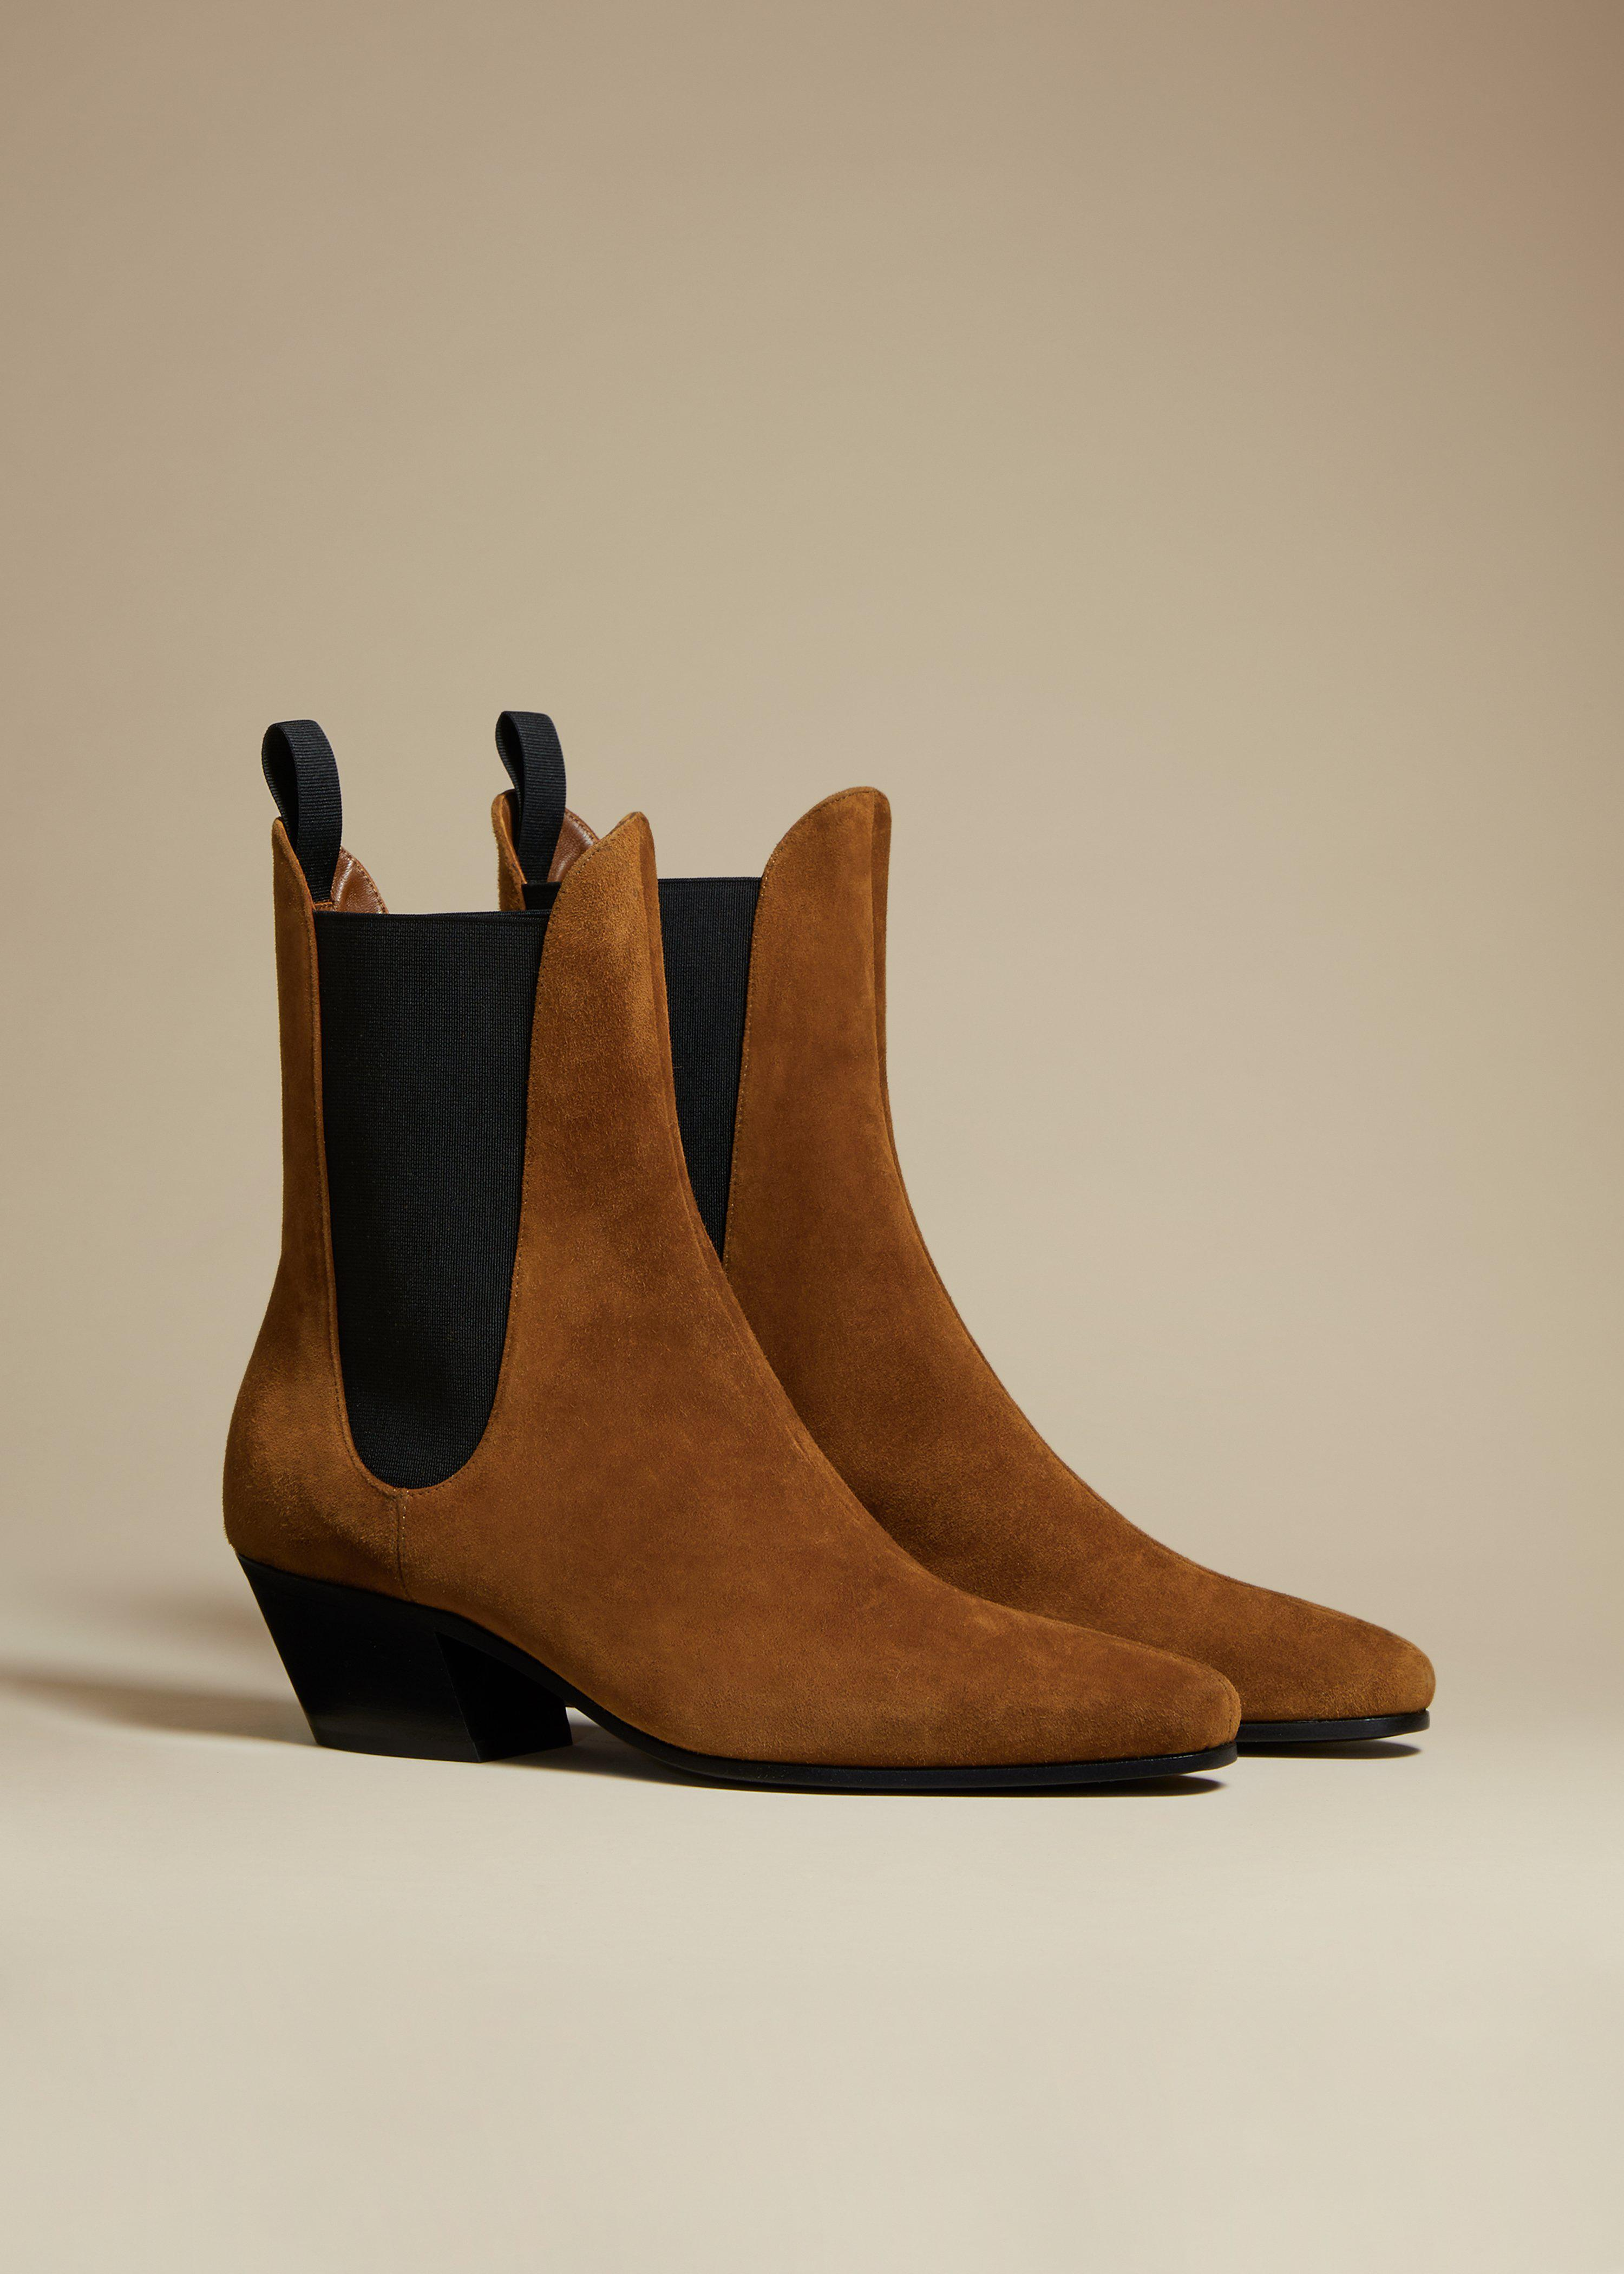 The Saratoga Boot in Caramel Suede 1